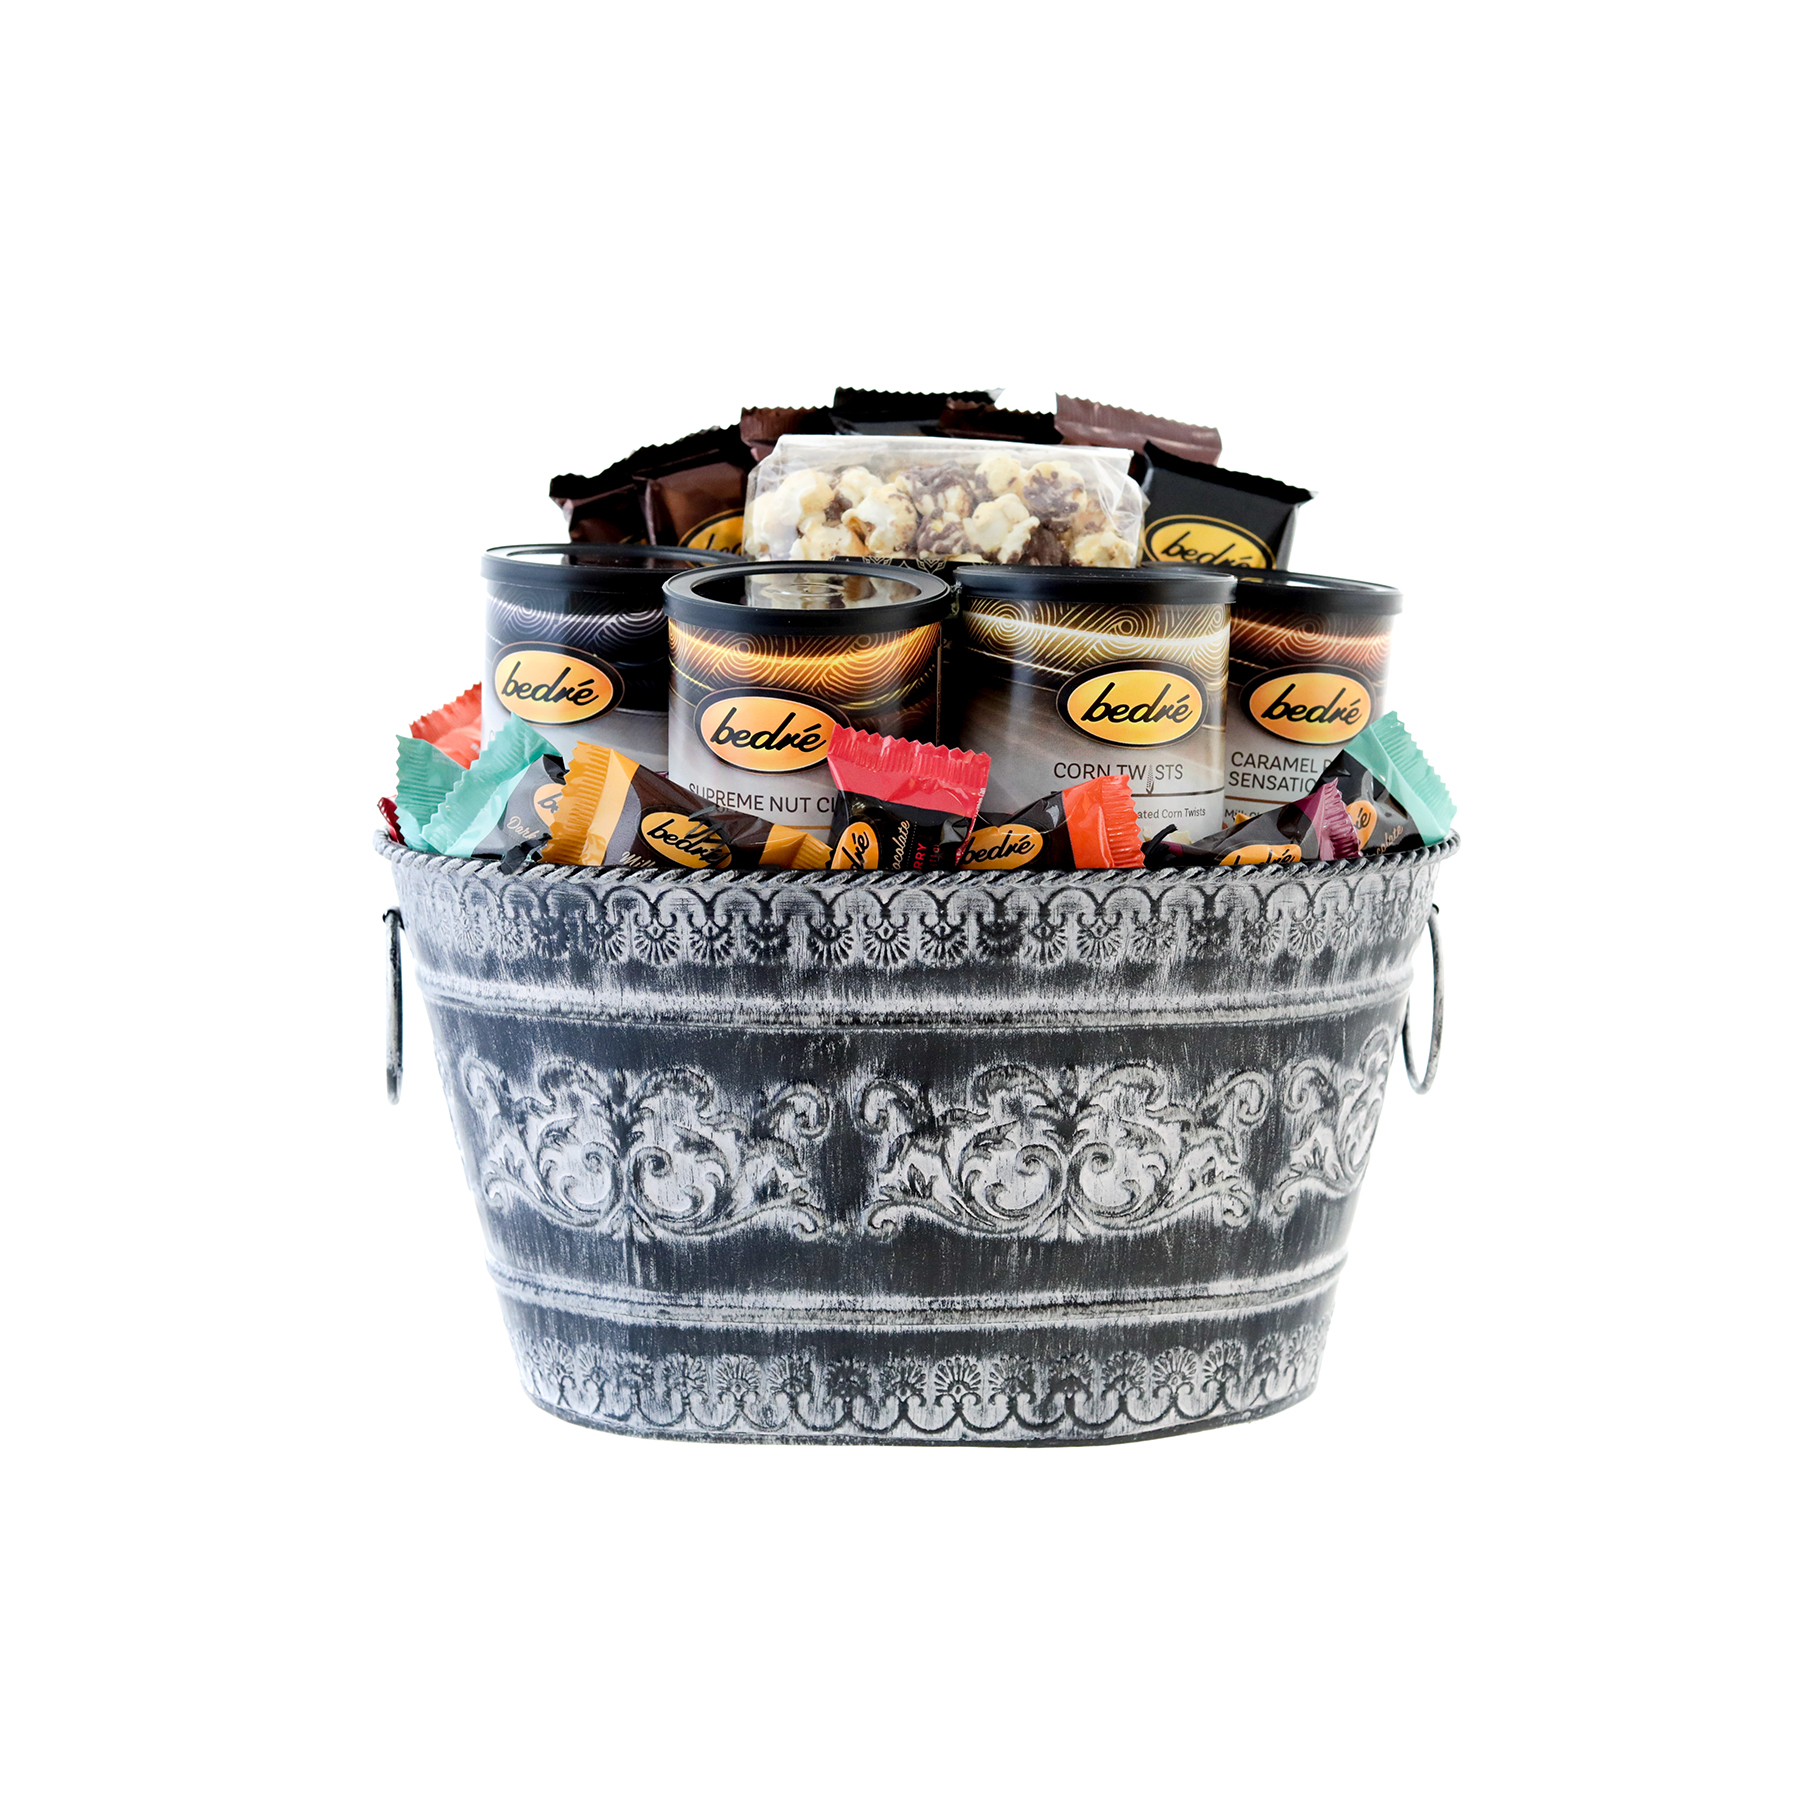 Large Mother's Day tin basket with assorted Bedre chocolates